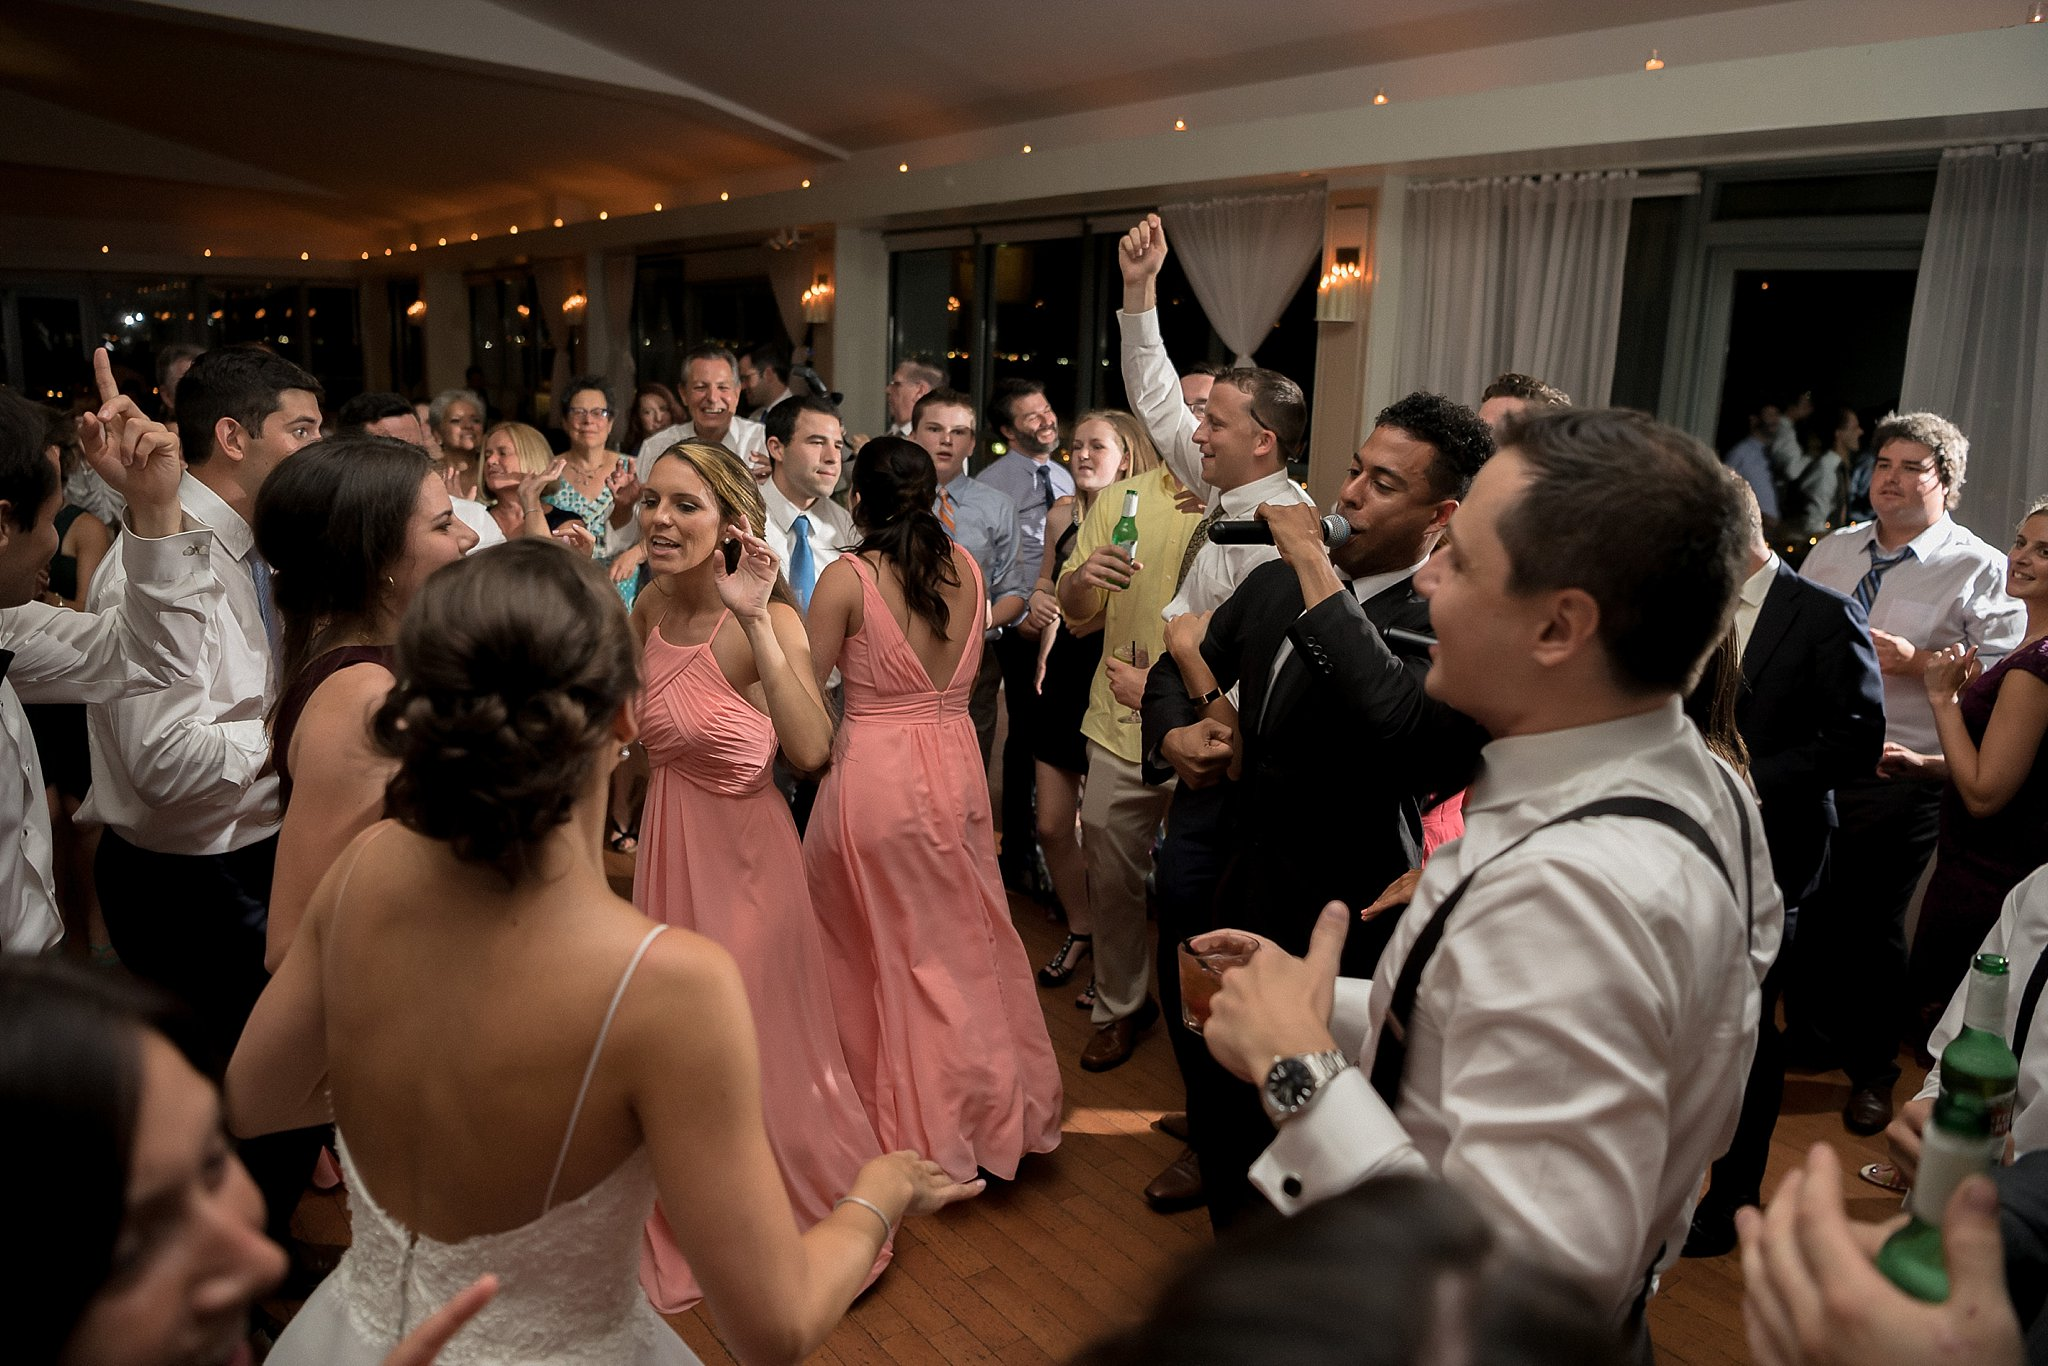 Wedding Reception Scene at Battery Gardens Photographed by Susan Shek Photography